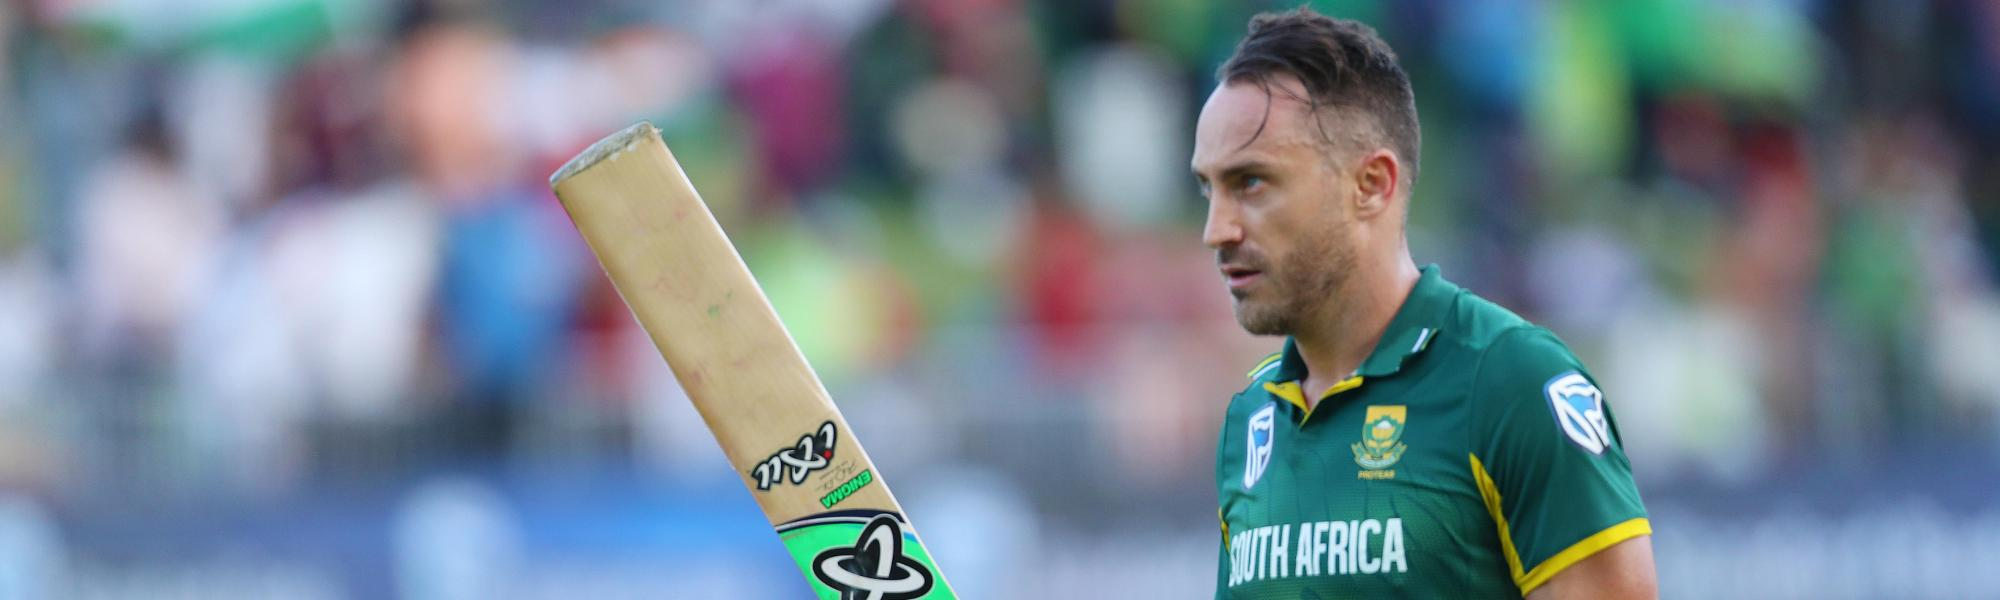 Faf du Plessis scored 120 from 112 balls against India in Durban before fracturing his finger